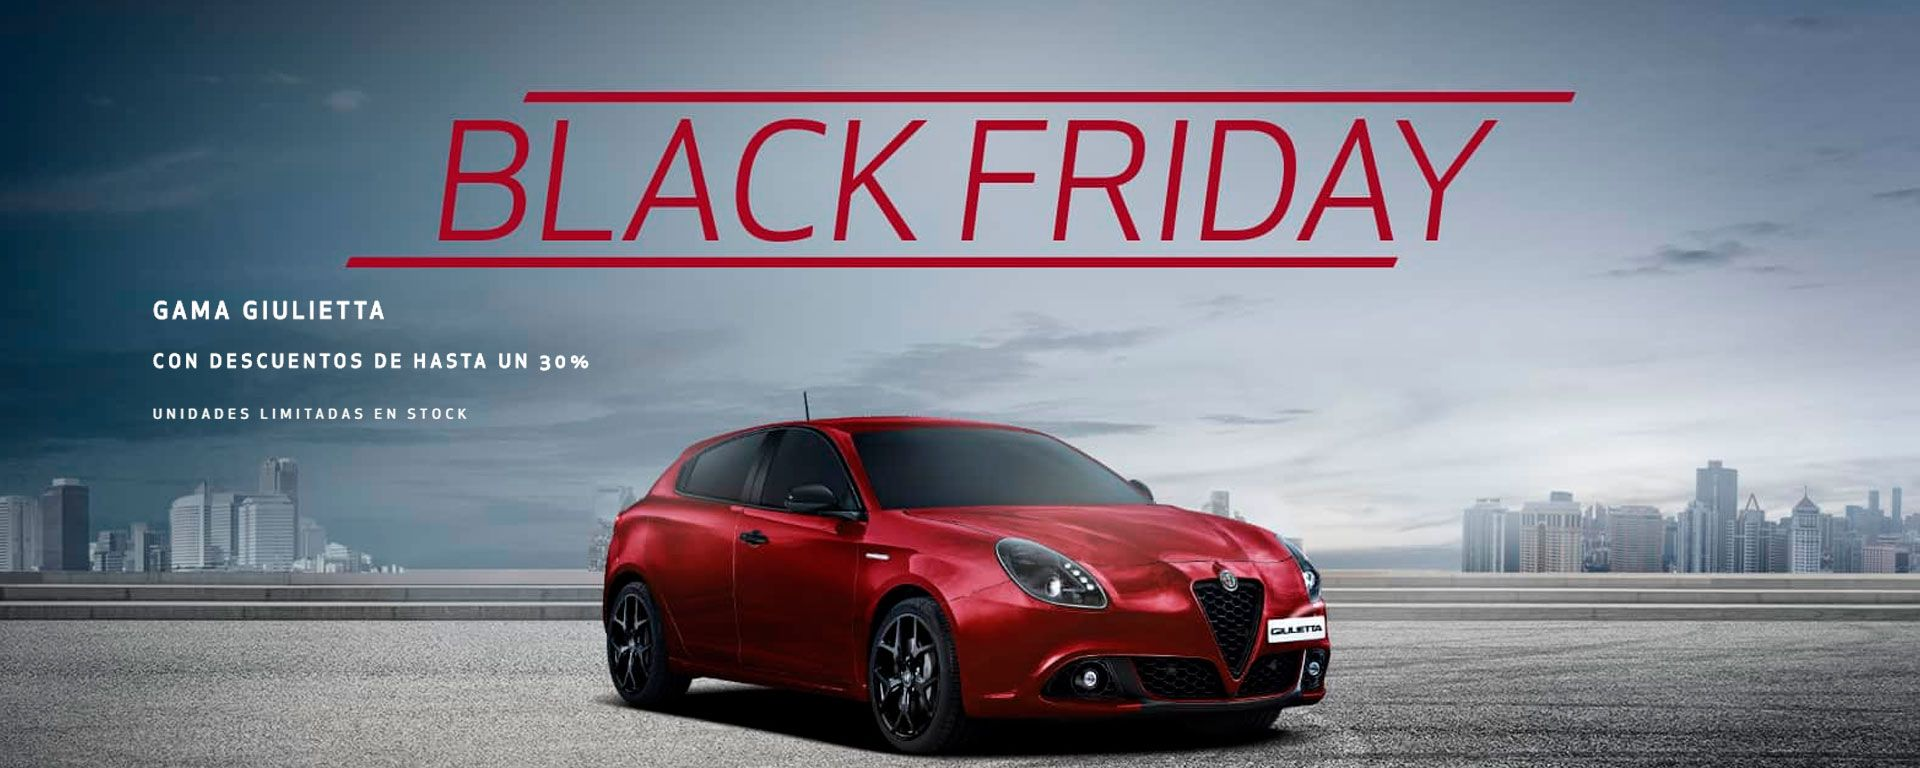 GIULIETTA BLACK FRIDAY.